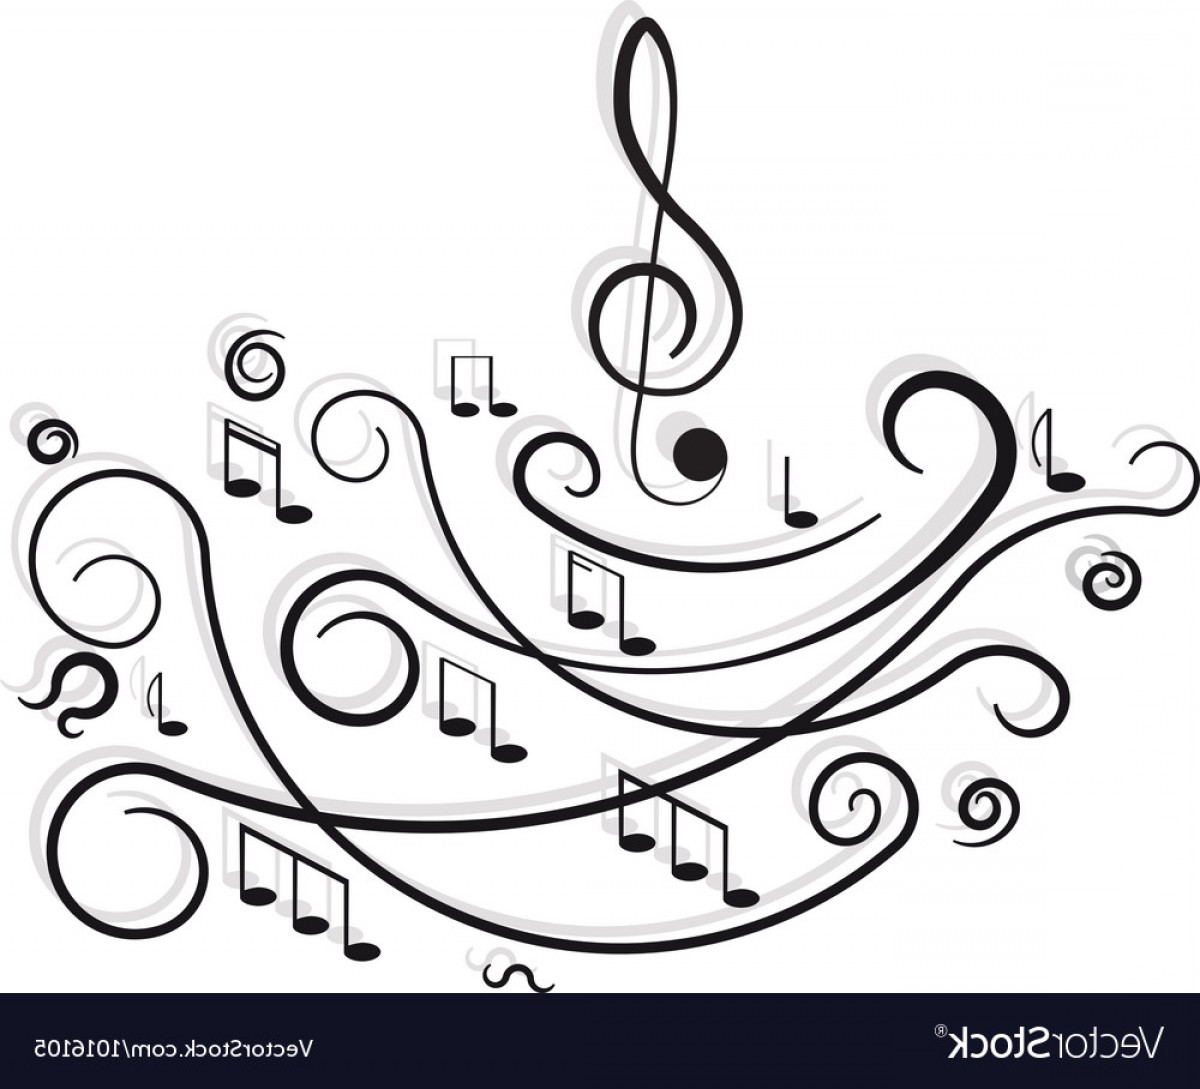 Flourish Music Note Silhouette Vector: Musical Notes Ornament With Swirls On White Vector